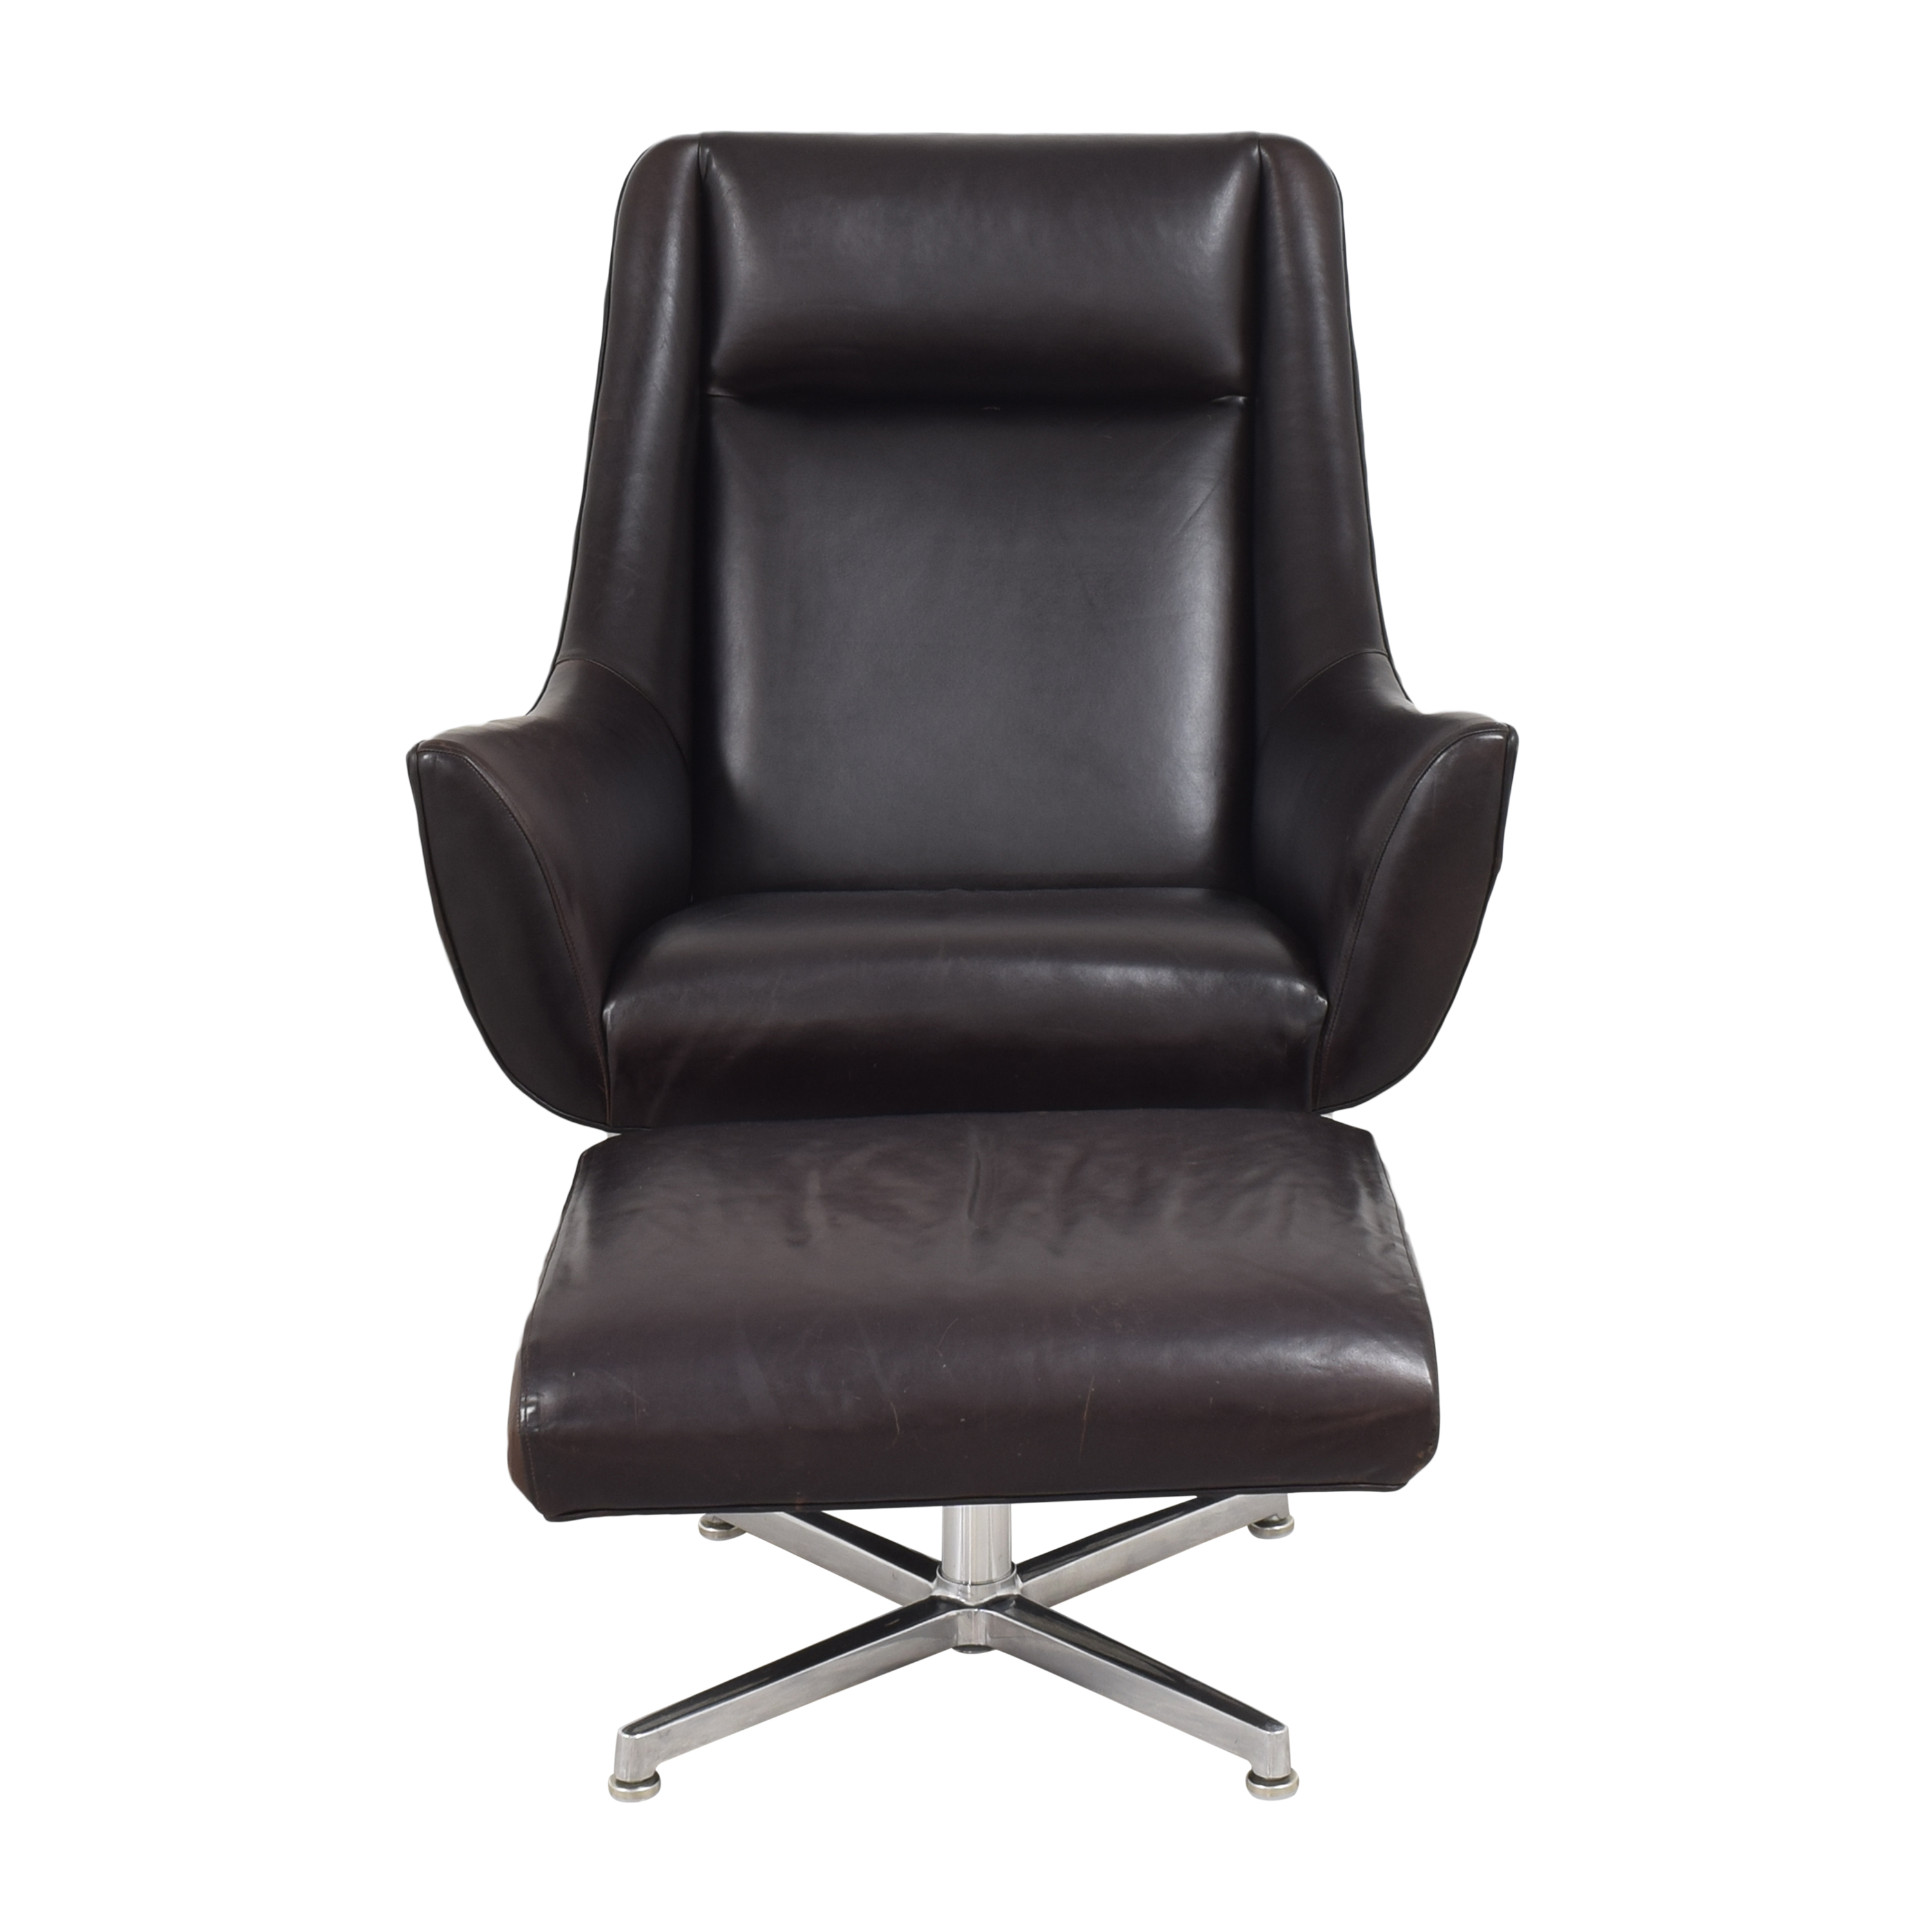 Room & Board Room & Board Charles Chair with Ottoman pa